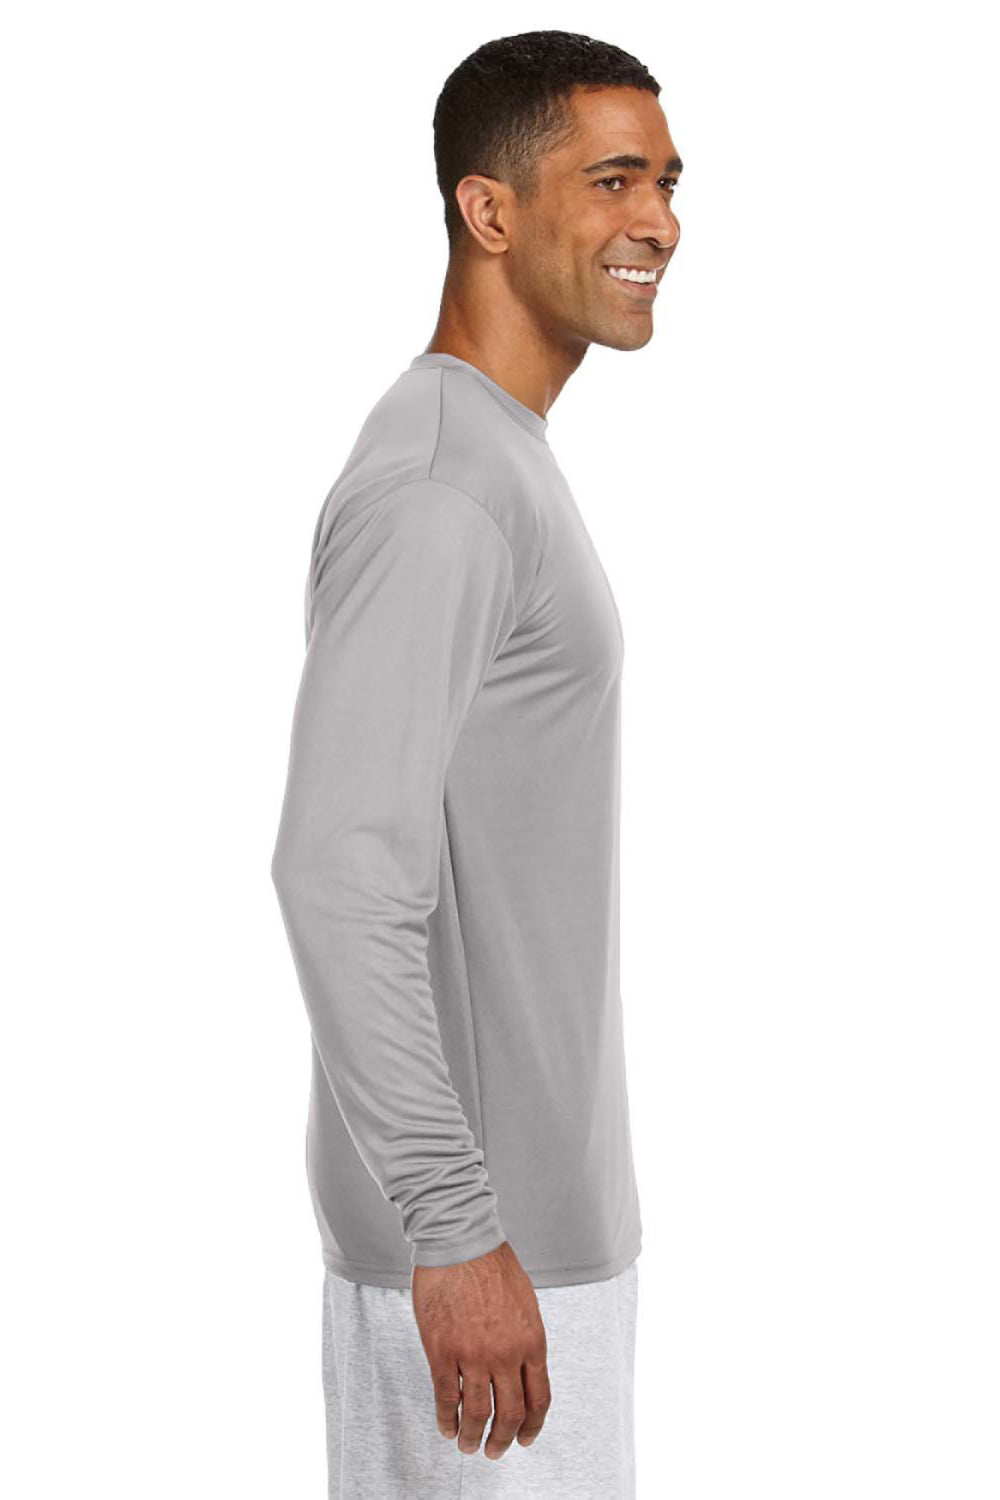 A4 N3165 Mens Cooling Performance Moisture Wicking Long Sleeve Crewneck T-Shirt Silver Grey Side